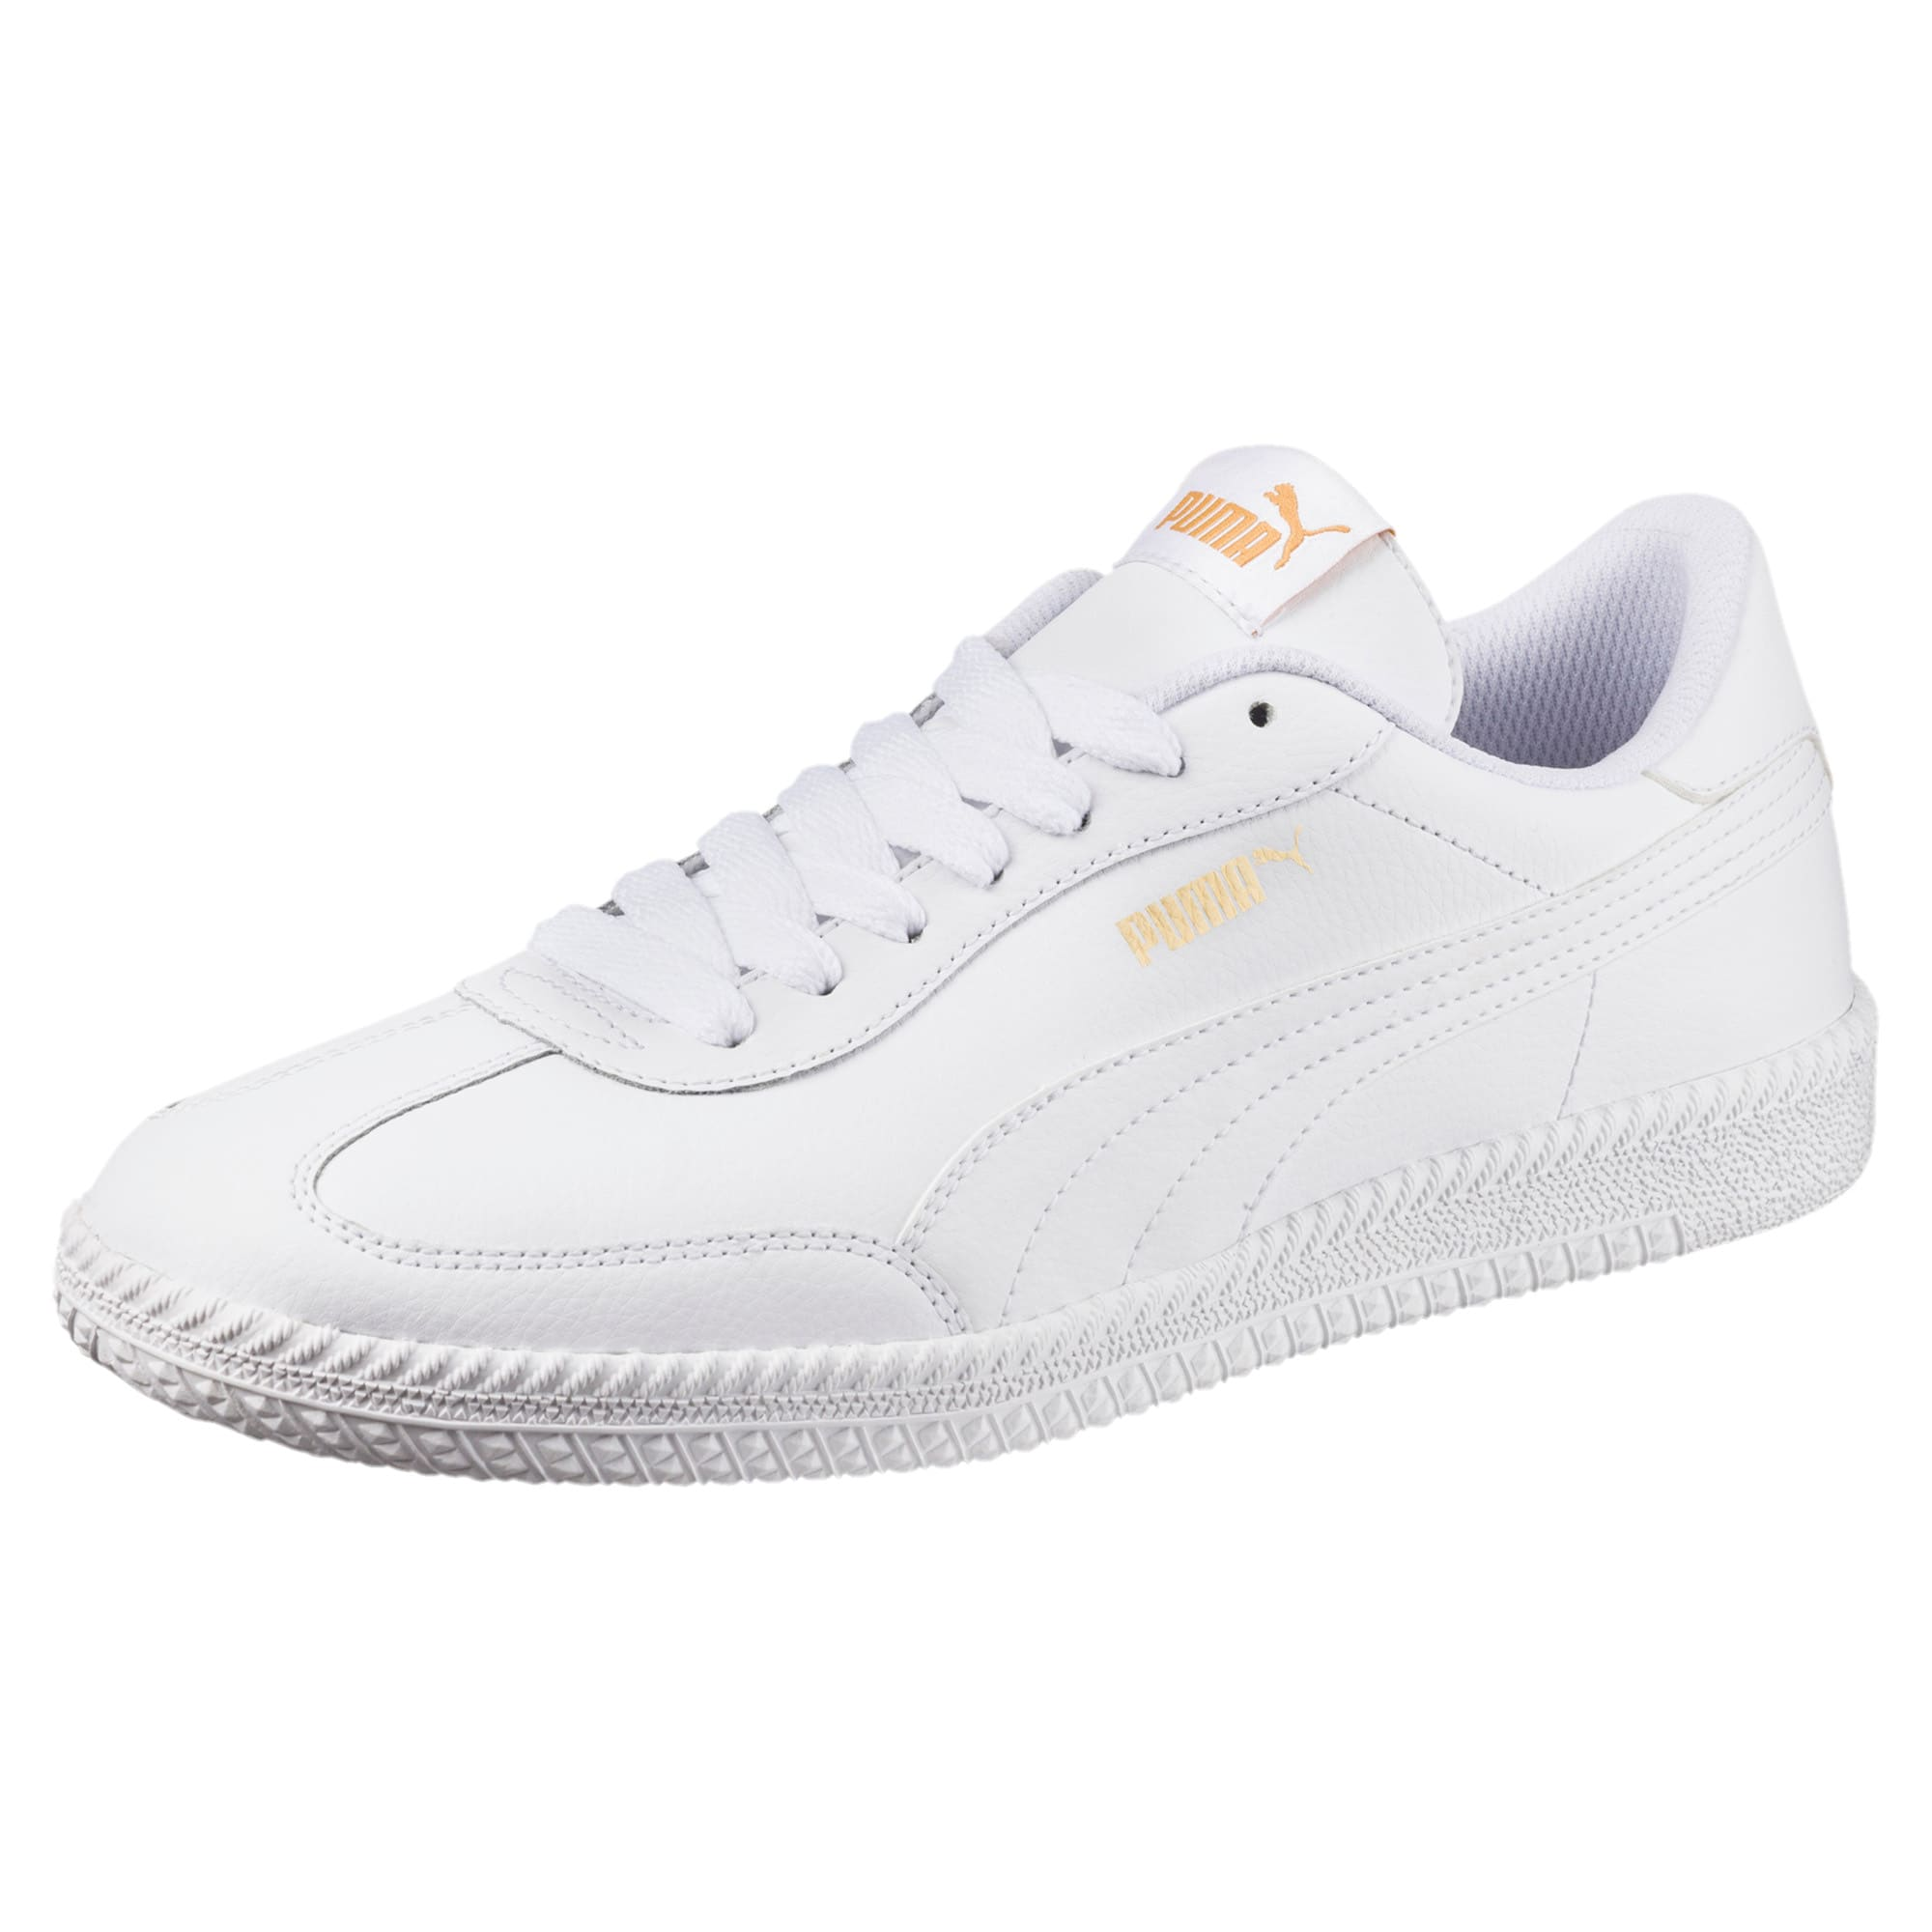 Thumbnail 1 of Astro Cup Leather Trainers, Puma White-Puma White, medium-IND